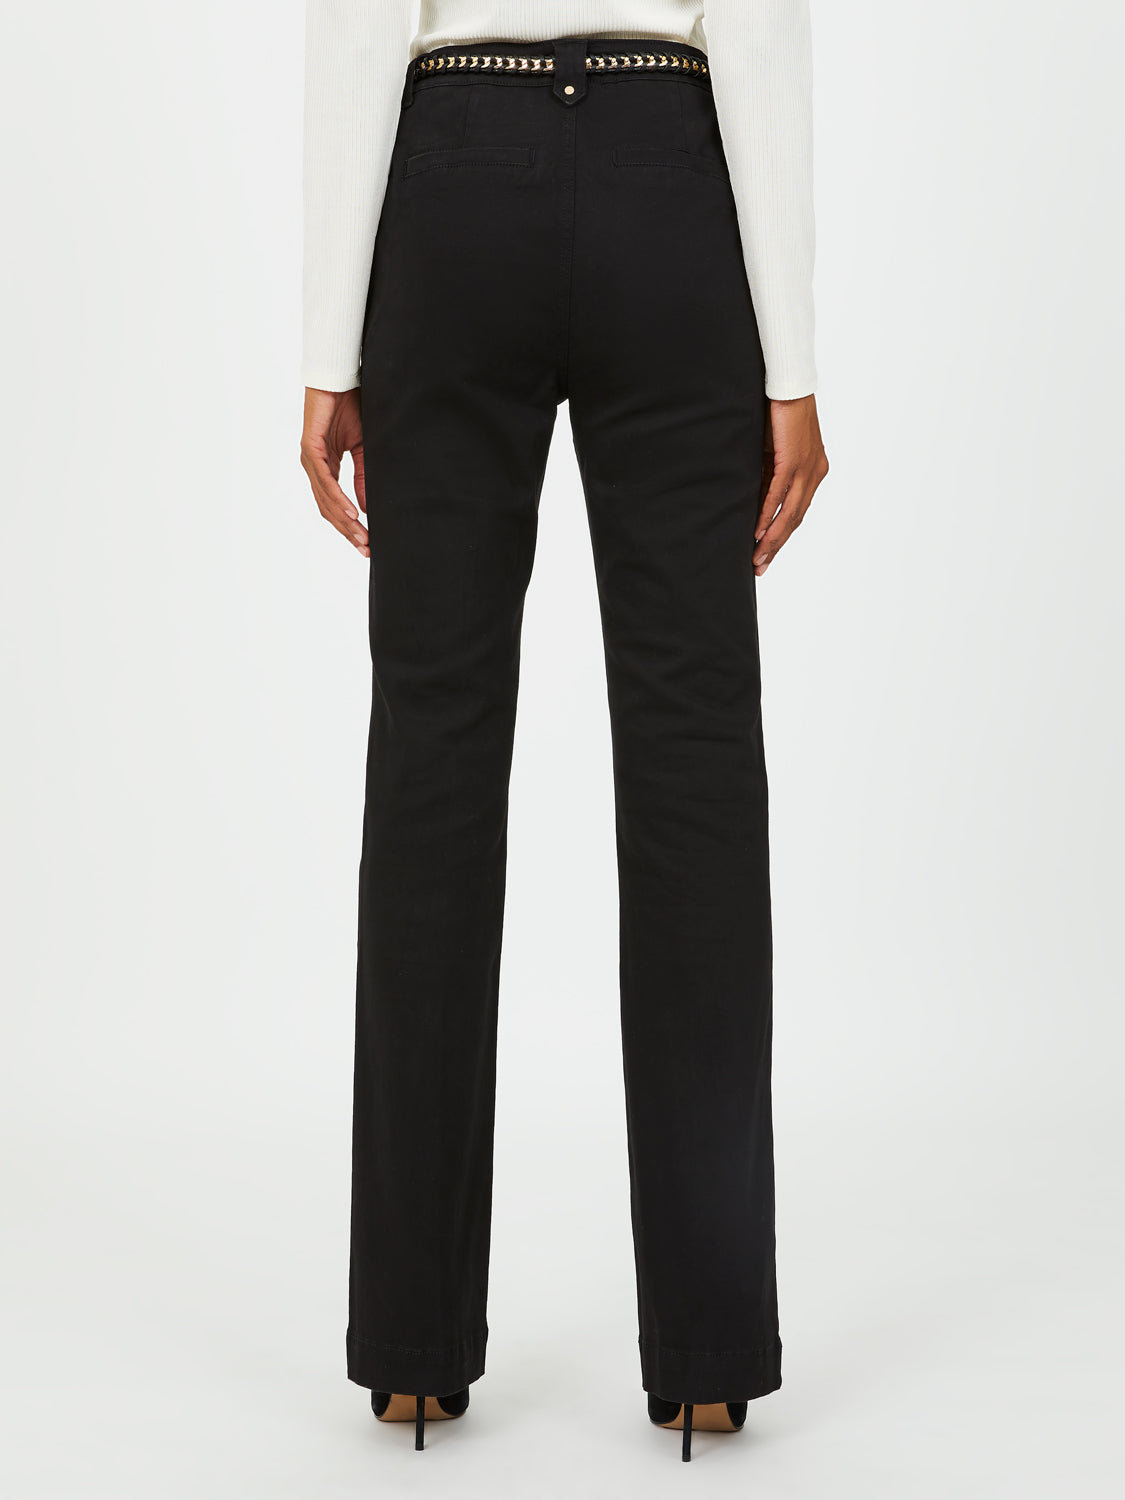 Chain Belt Bootcut Mid-Rise Trousers